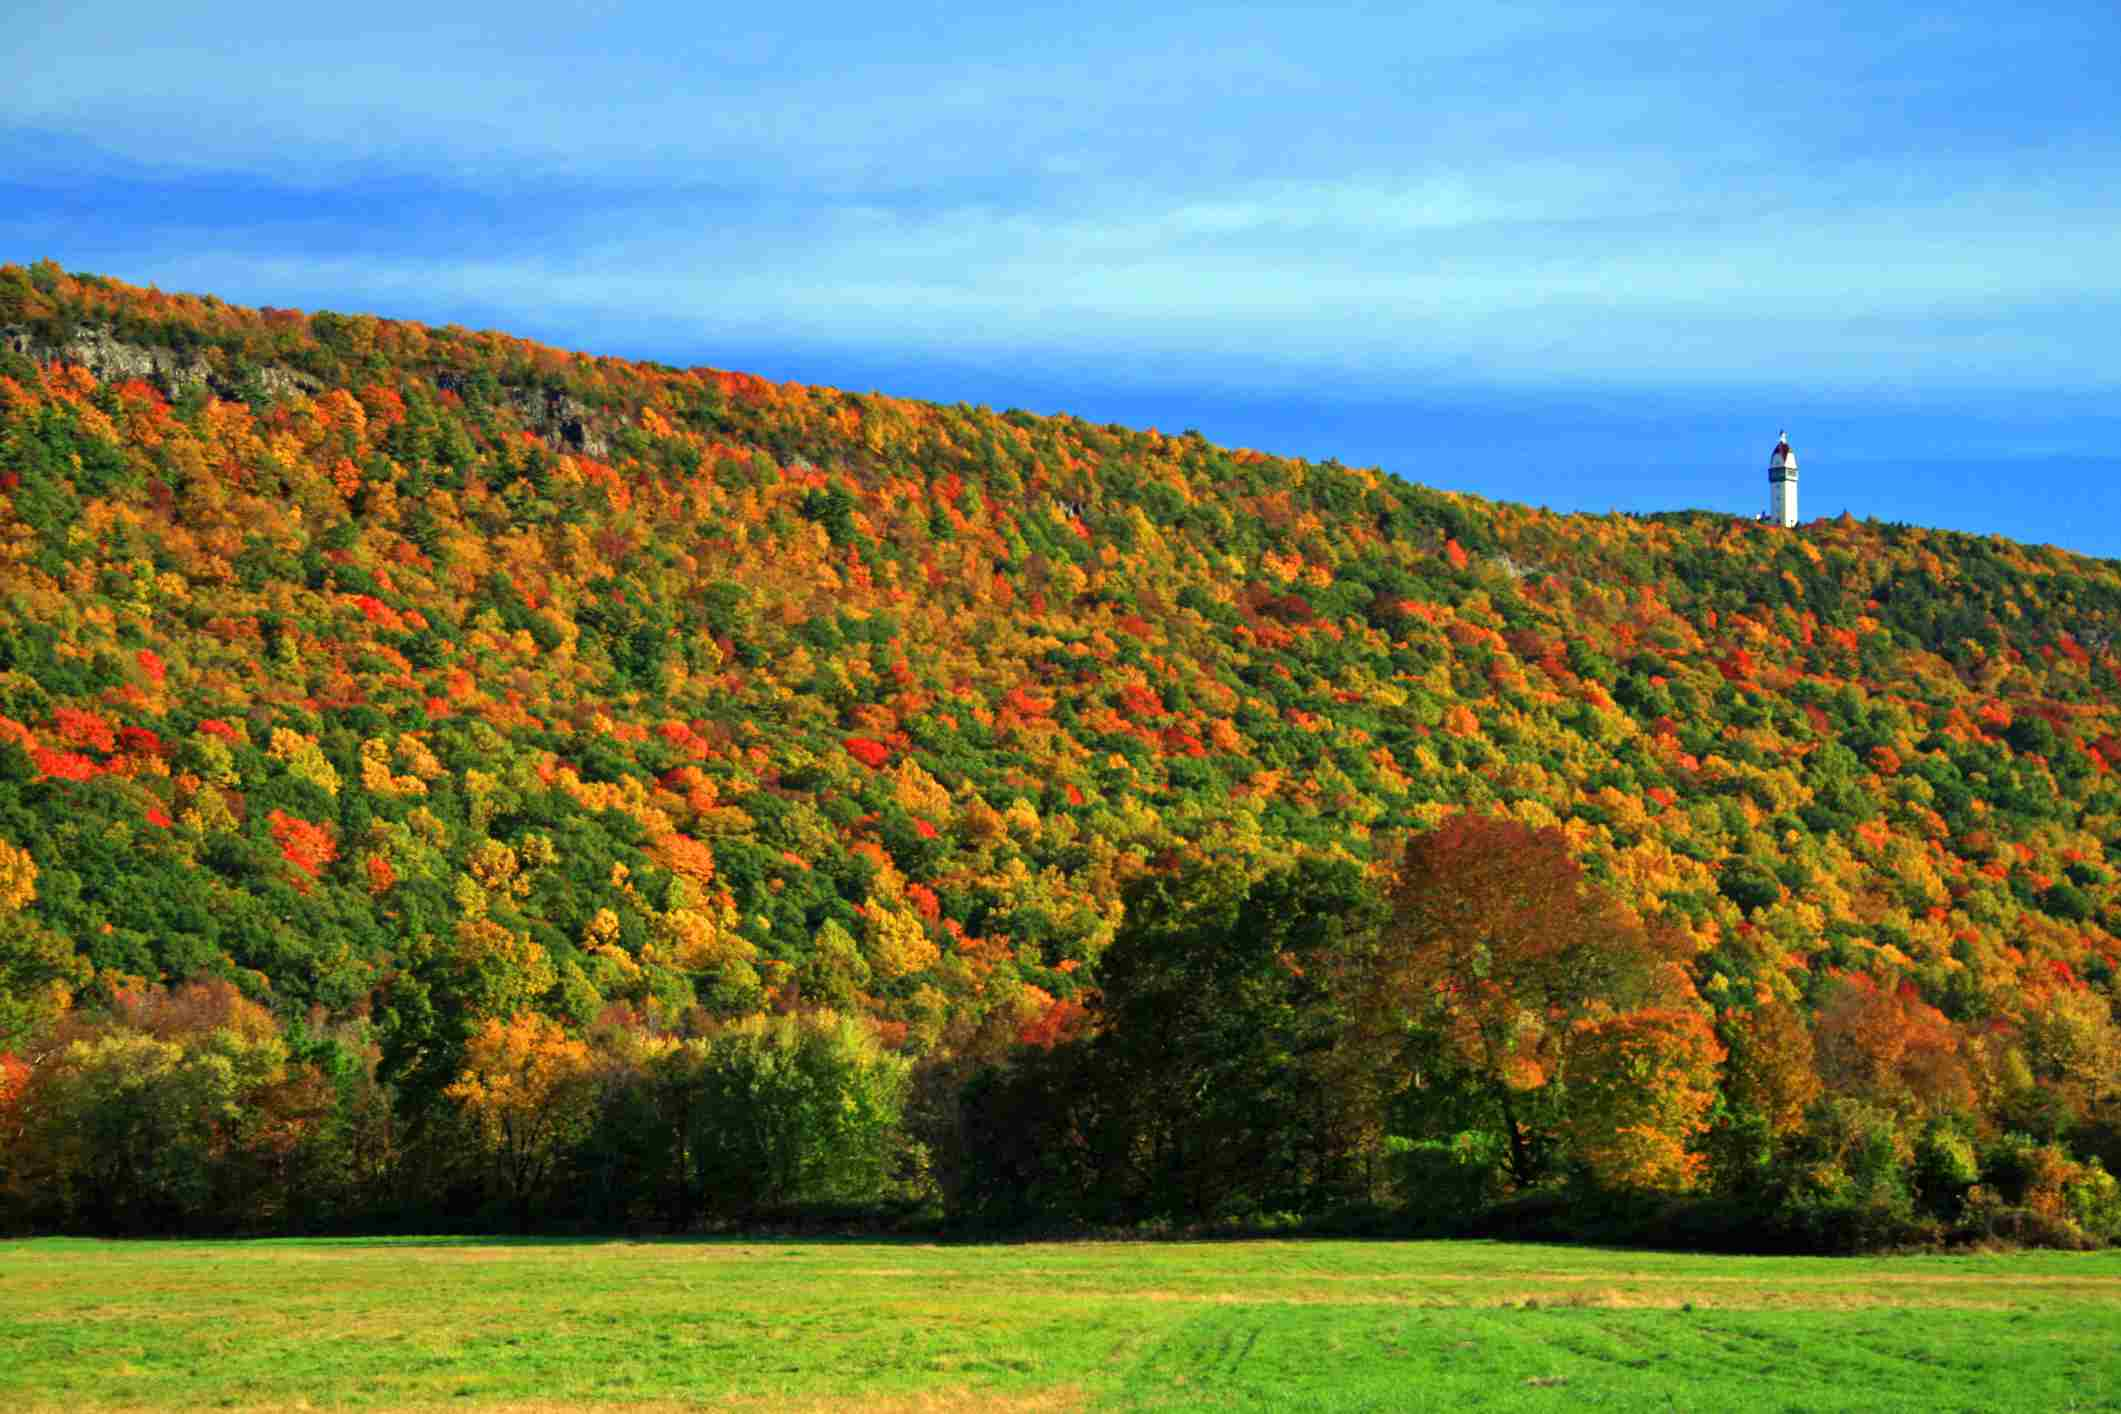 The Best Places to See Fall Foliage in Connecticut